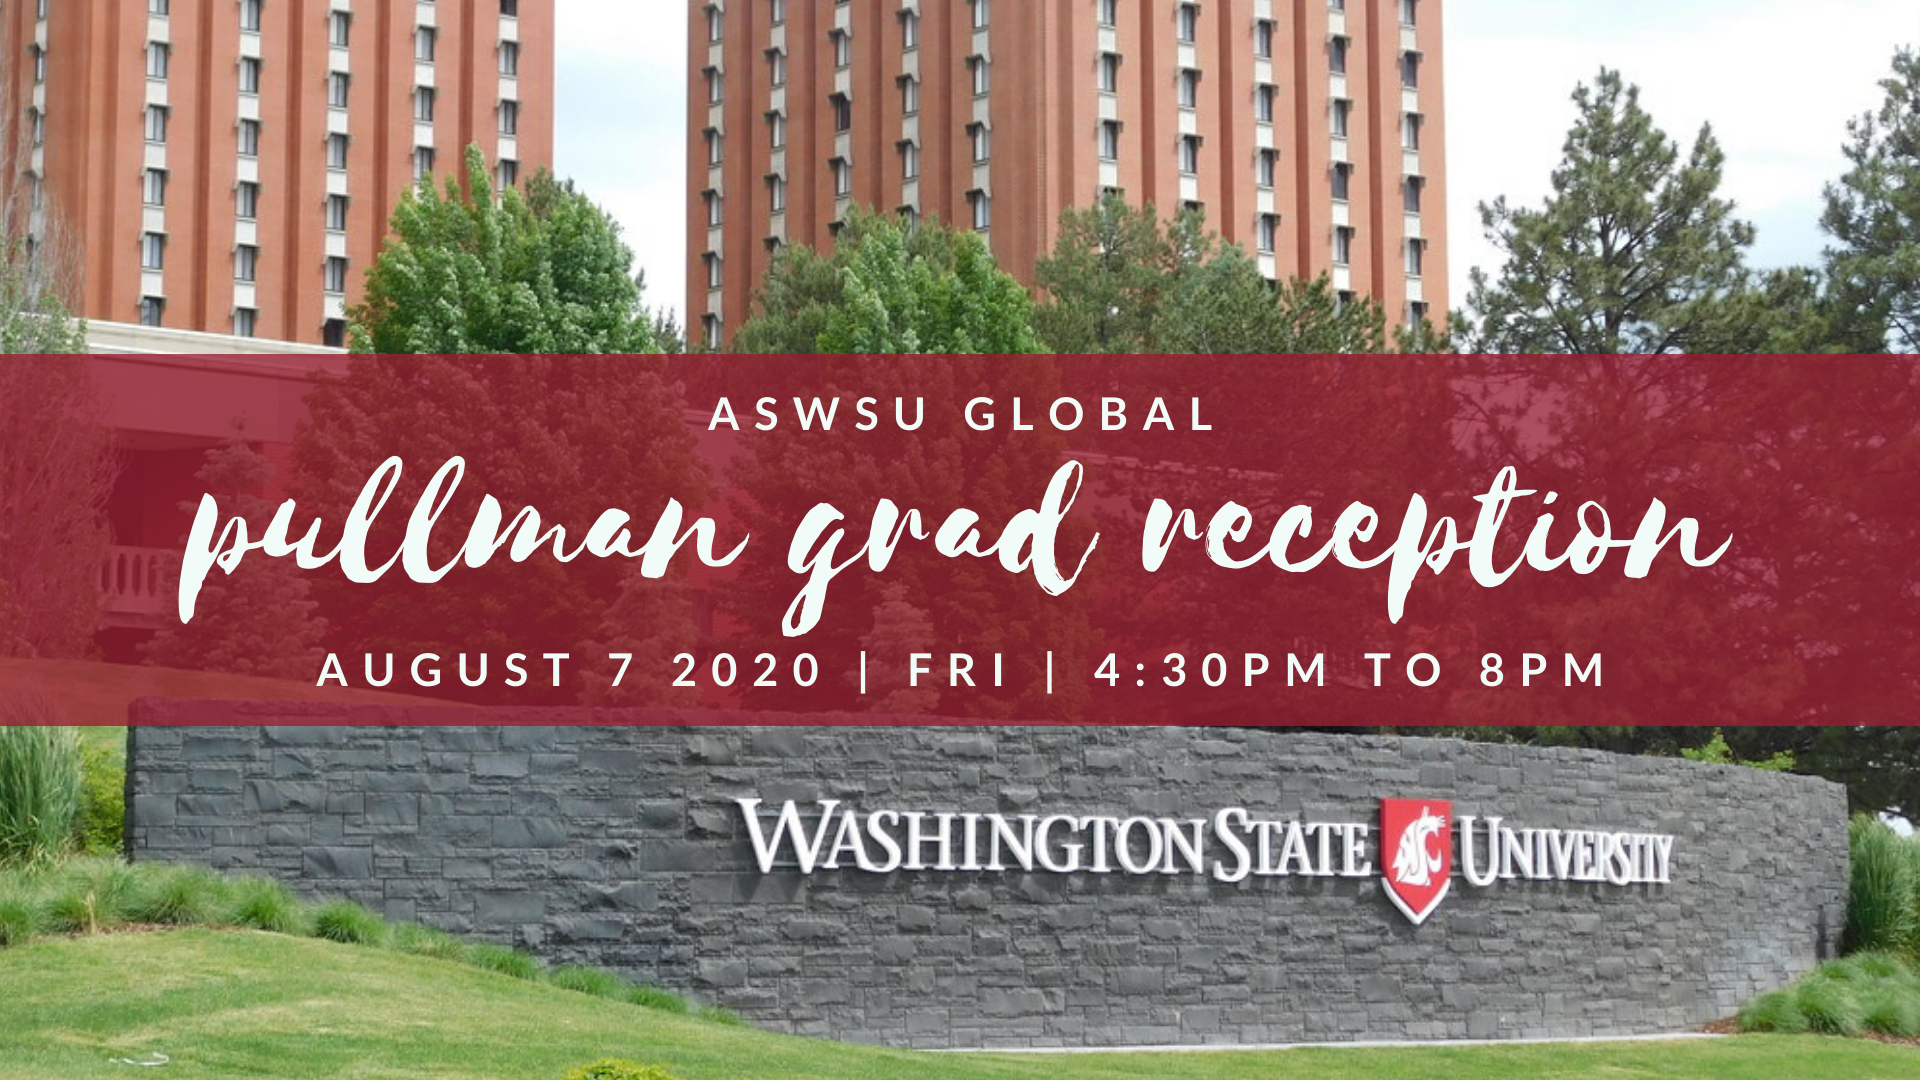 Graphic: ASWSU Global Pullman Grad Reception August 7 2020 Fri 4:30 pm to 8:00 pm - photo of dormitories in background.